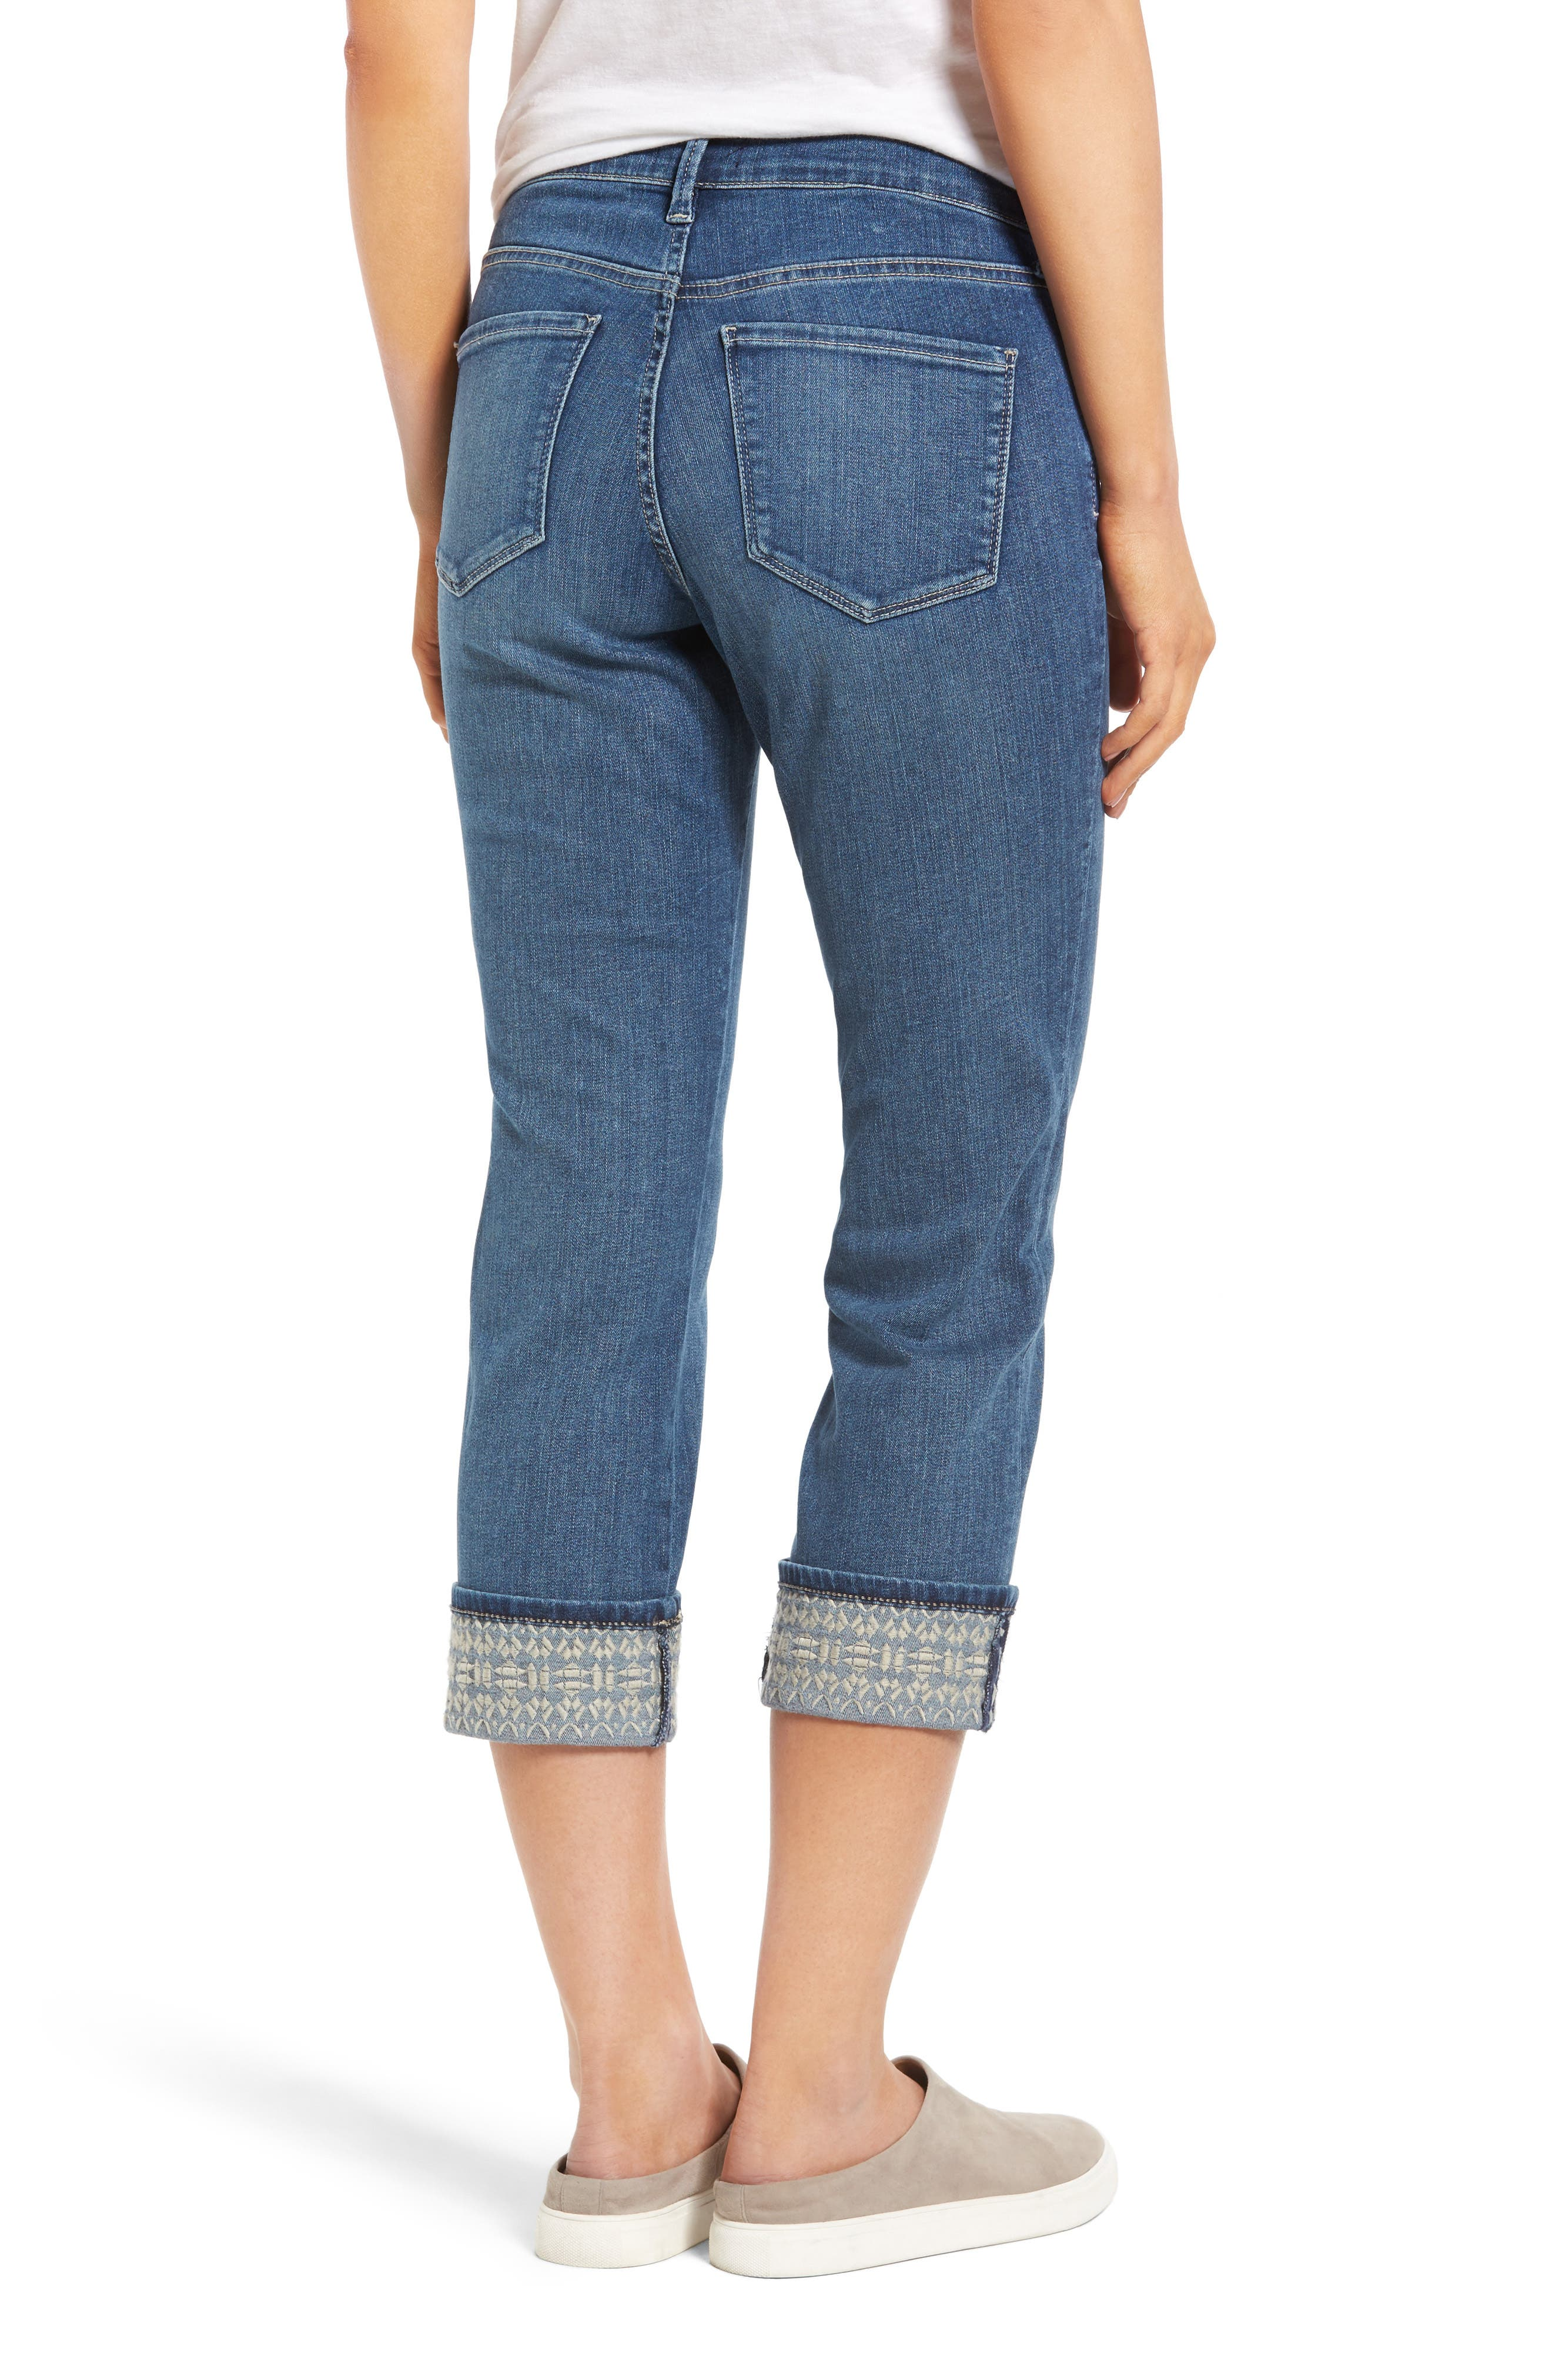 Dayla Embroidered Wide Cuff Capri Jeans,                             Alternate thumbnail 2, color,                             421